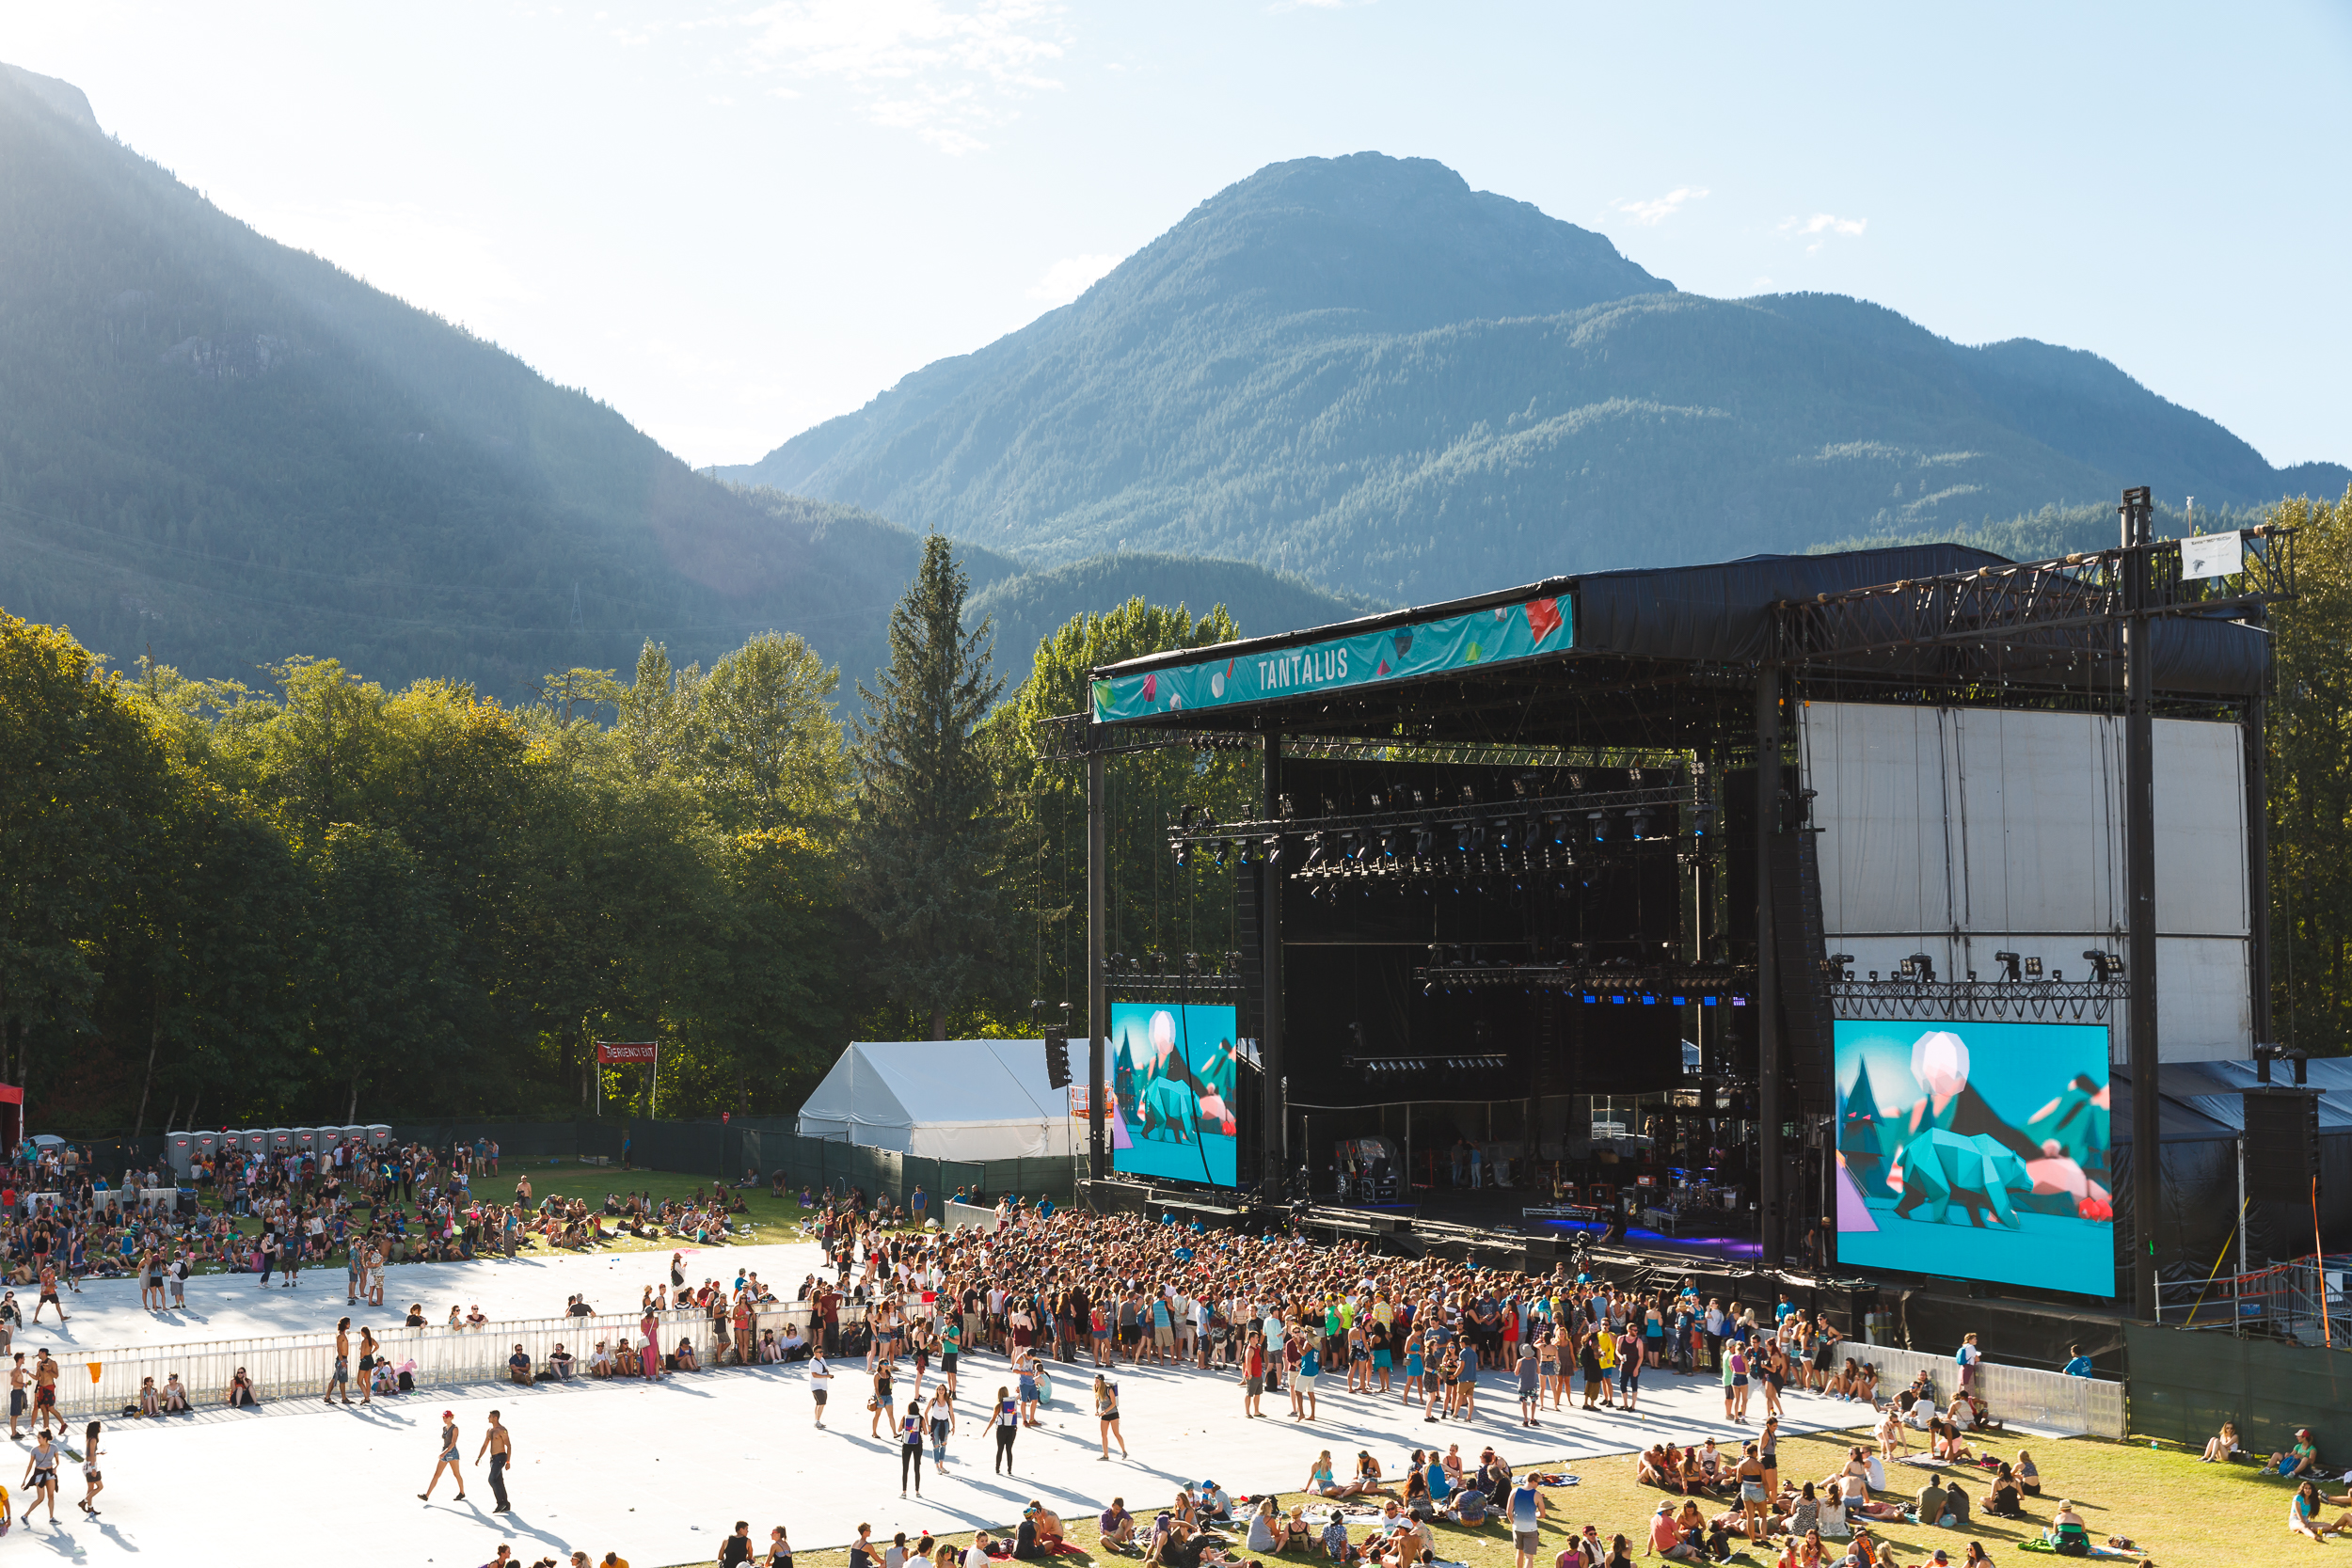 Squamish-Valley-Music-Festival-image-39.jpg